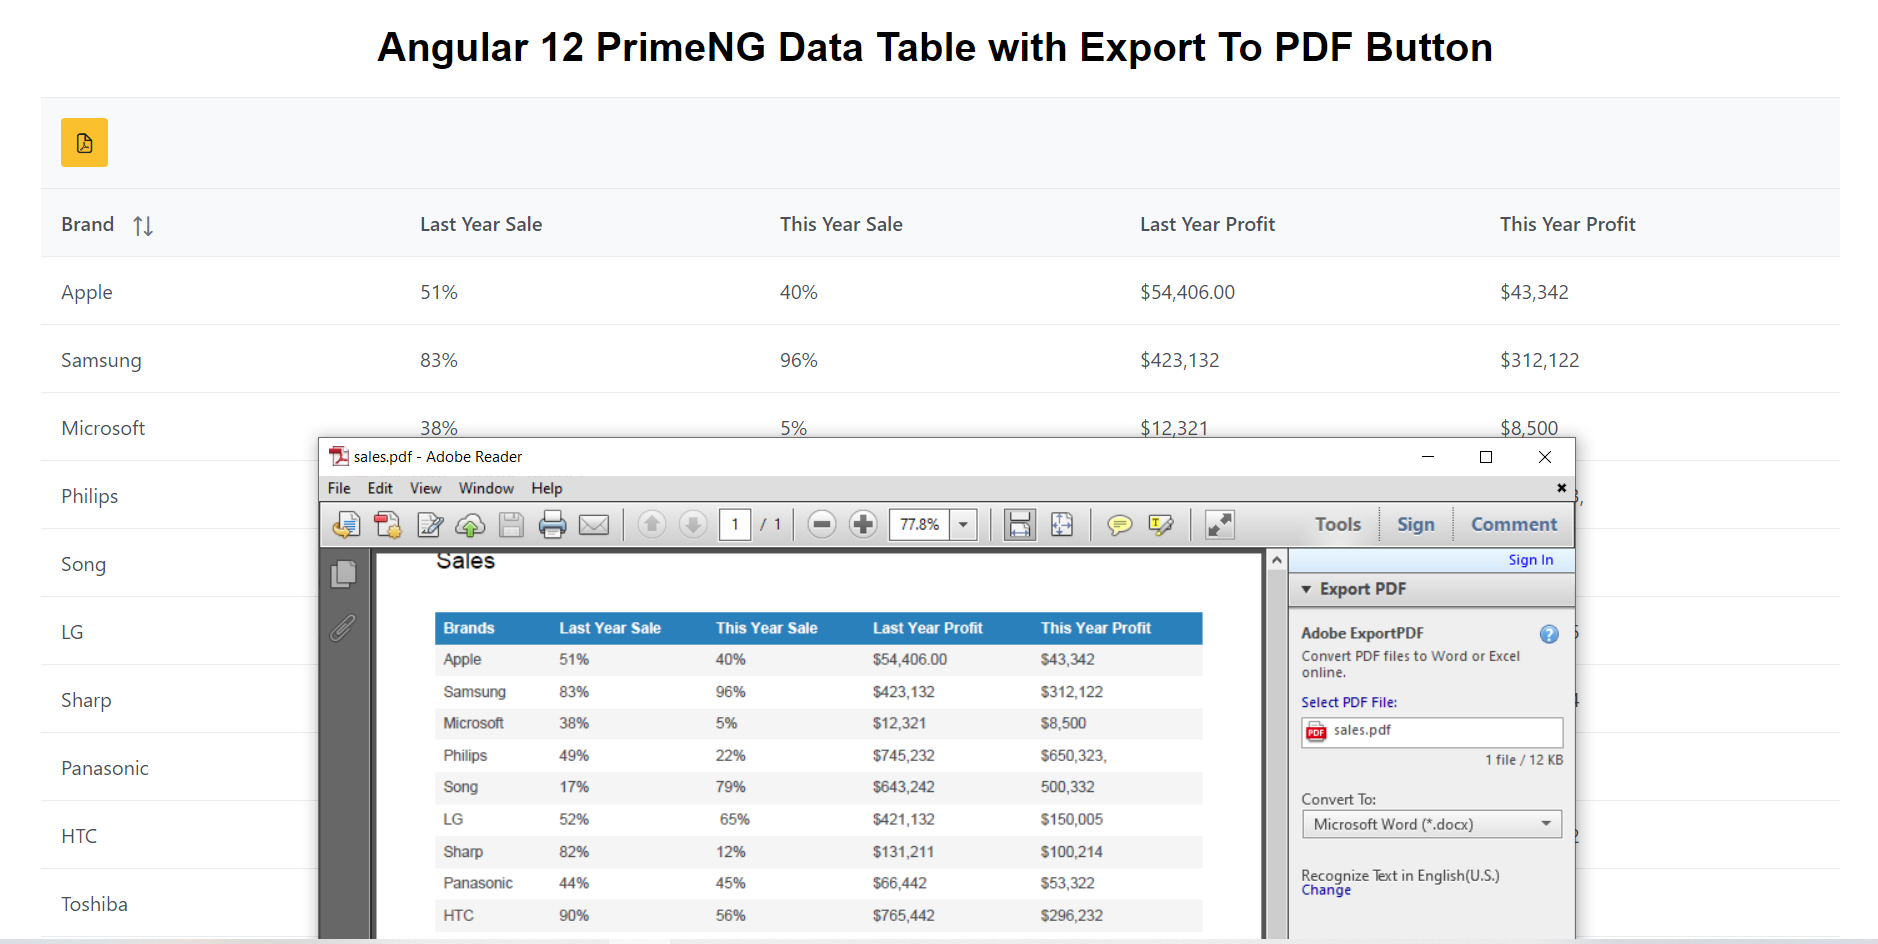 Angular 12 PrimeNG Data Table with Export to PDF Button